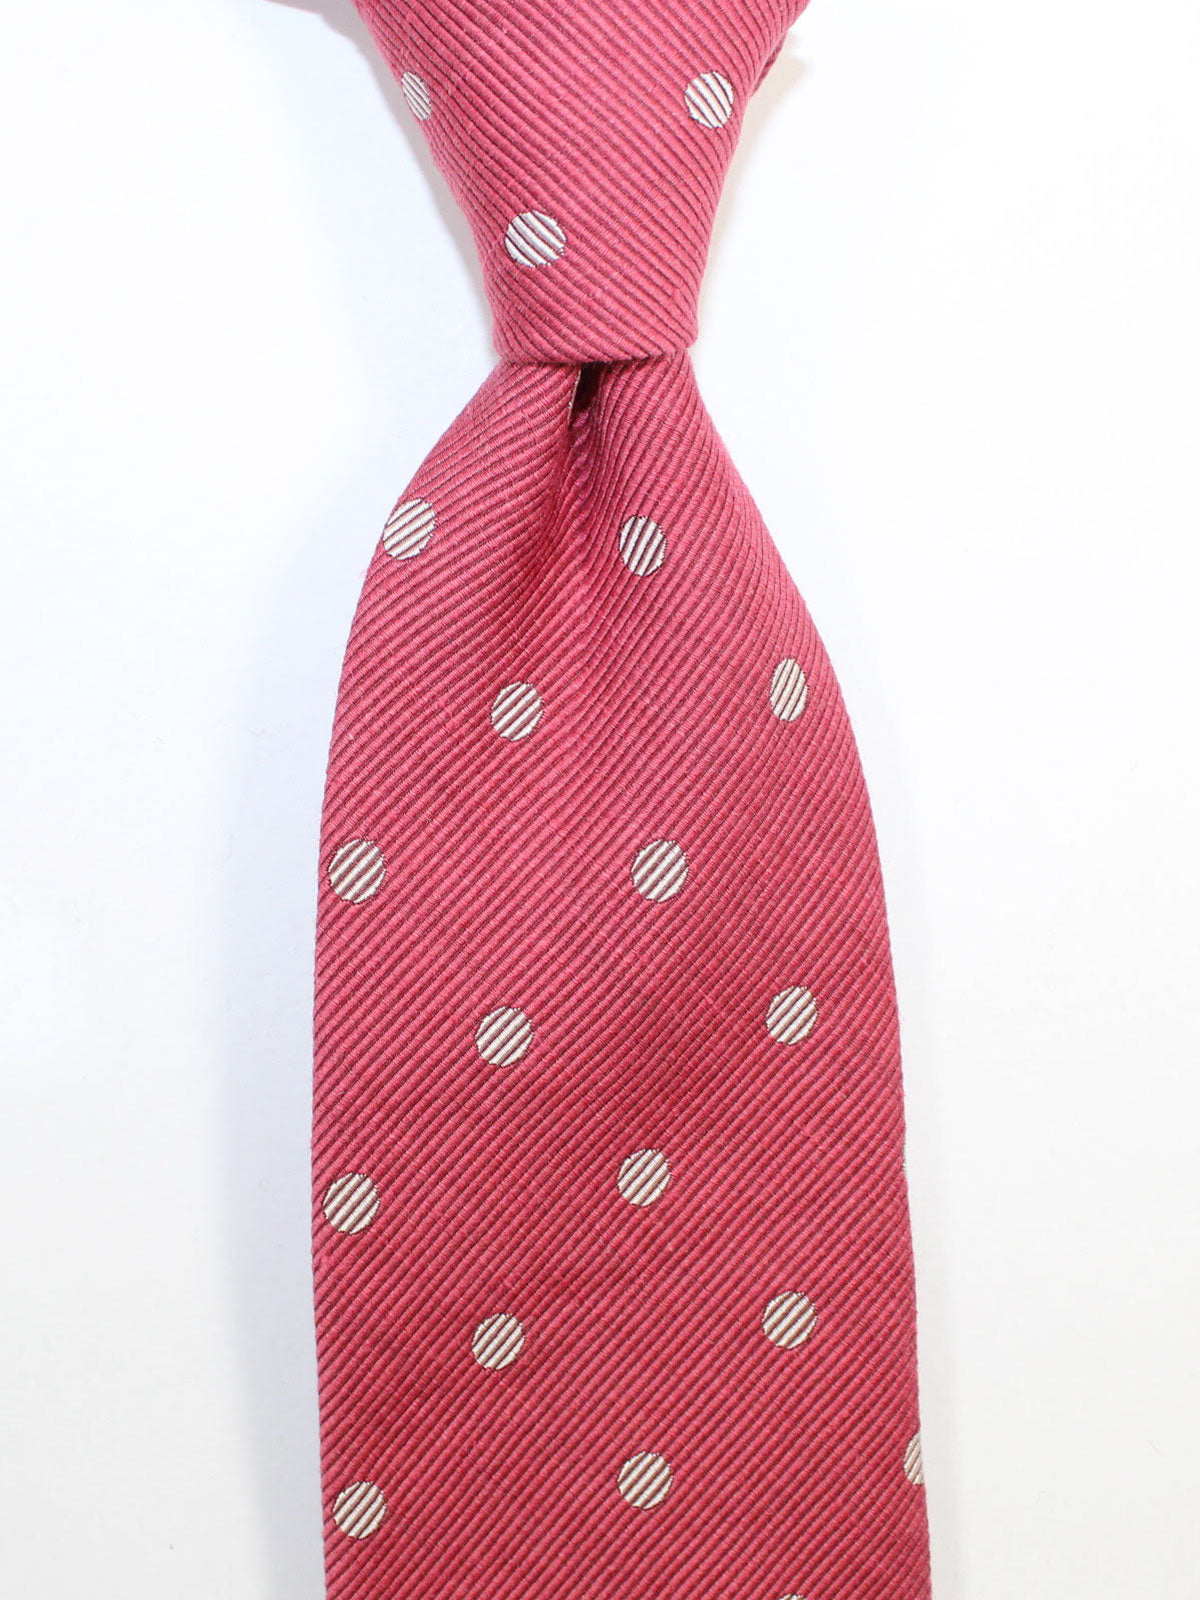 Tom Ford Linen Silk Tie Fuchsia Polka Dots Design